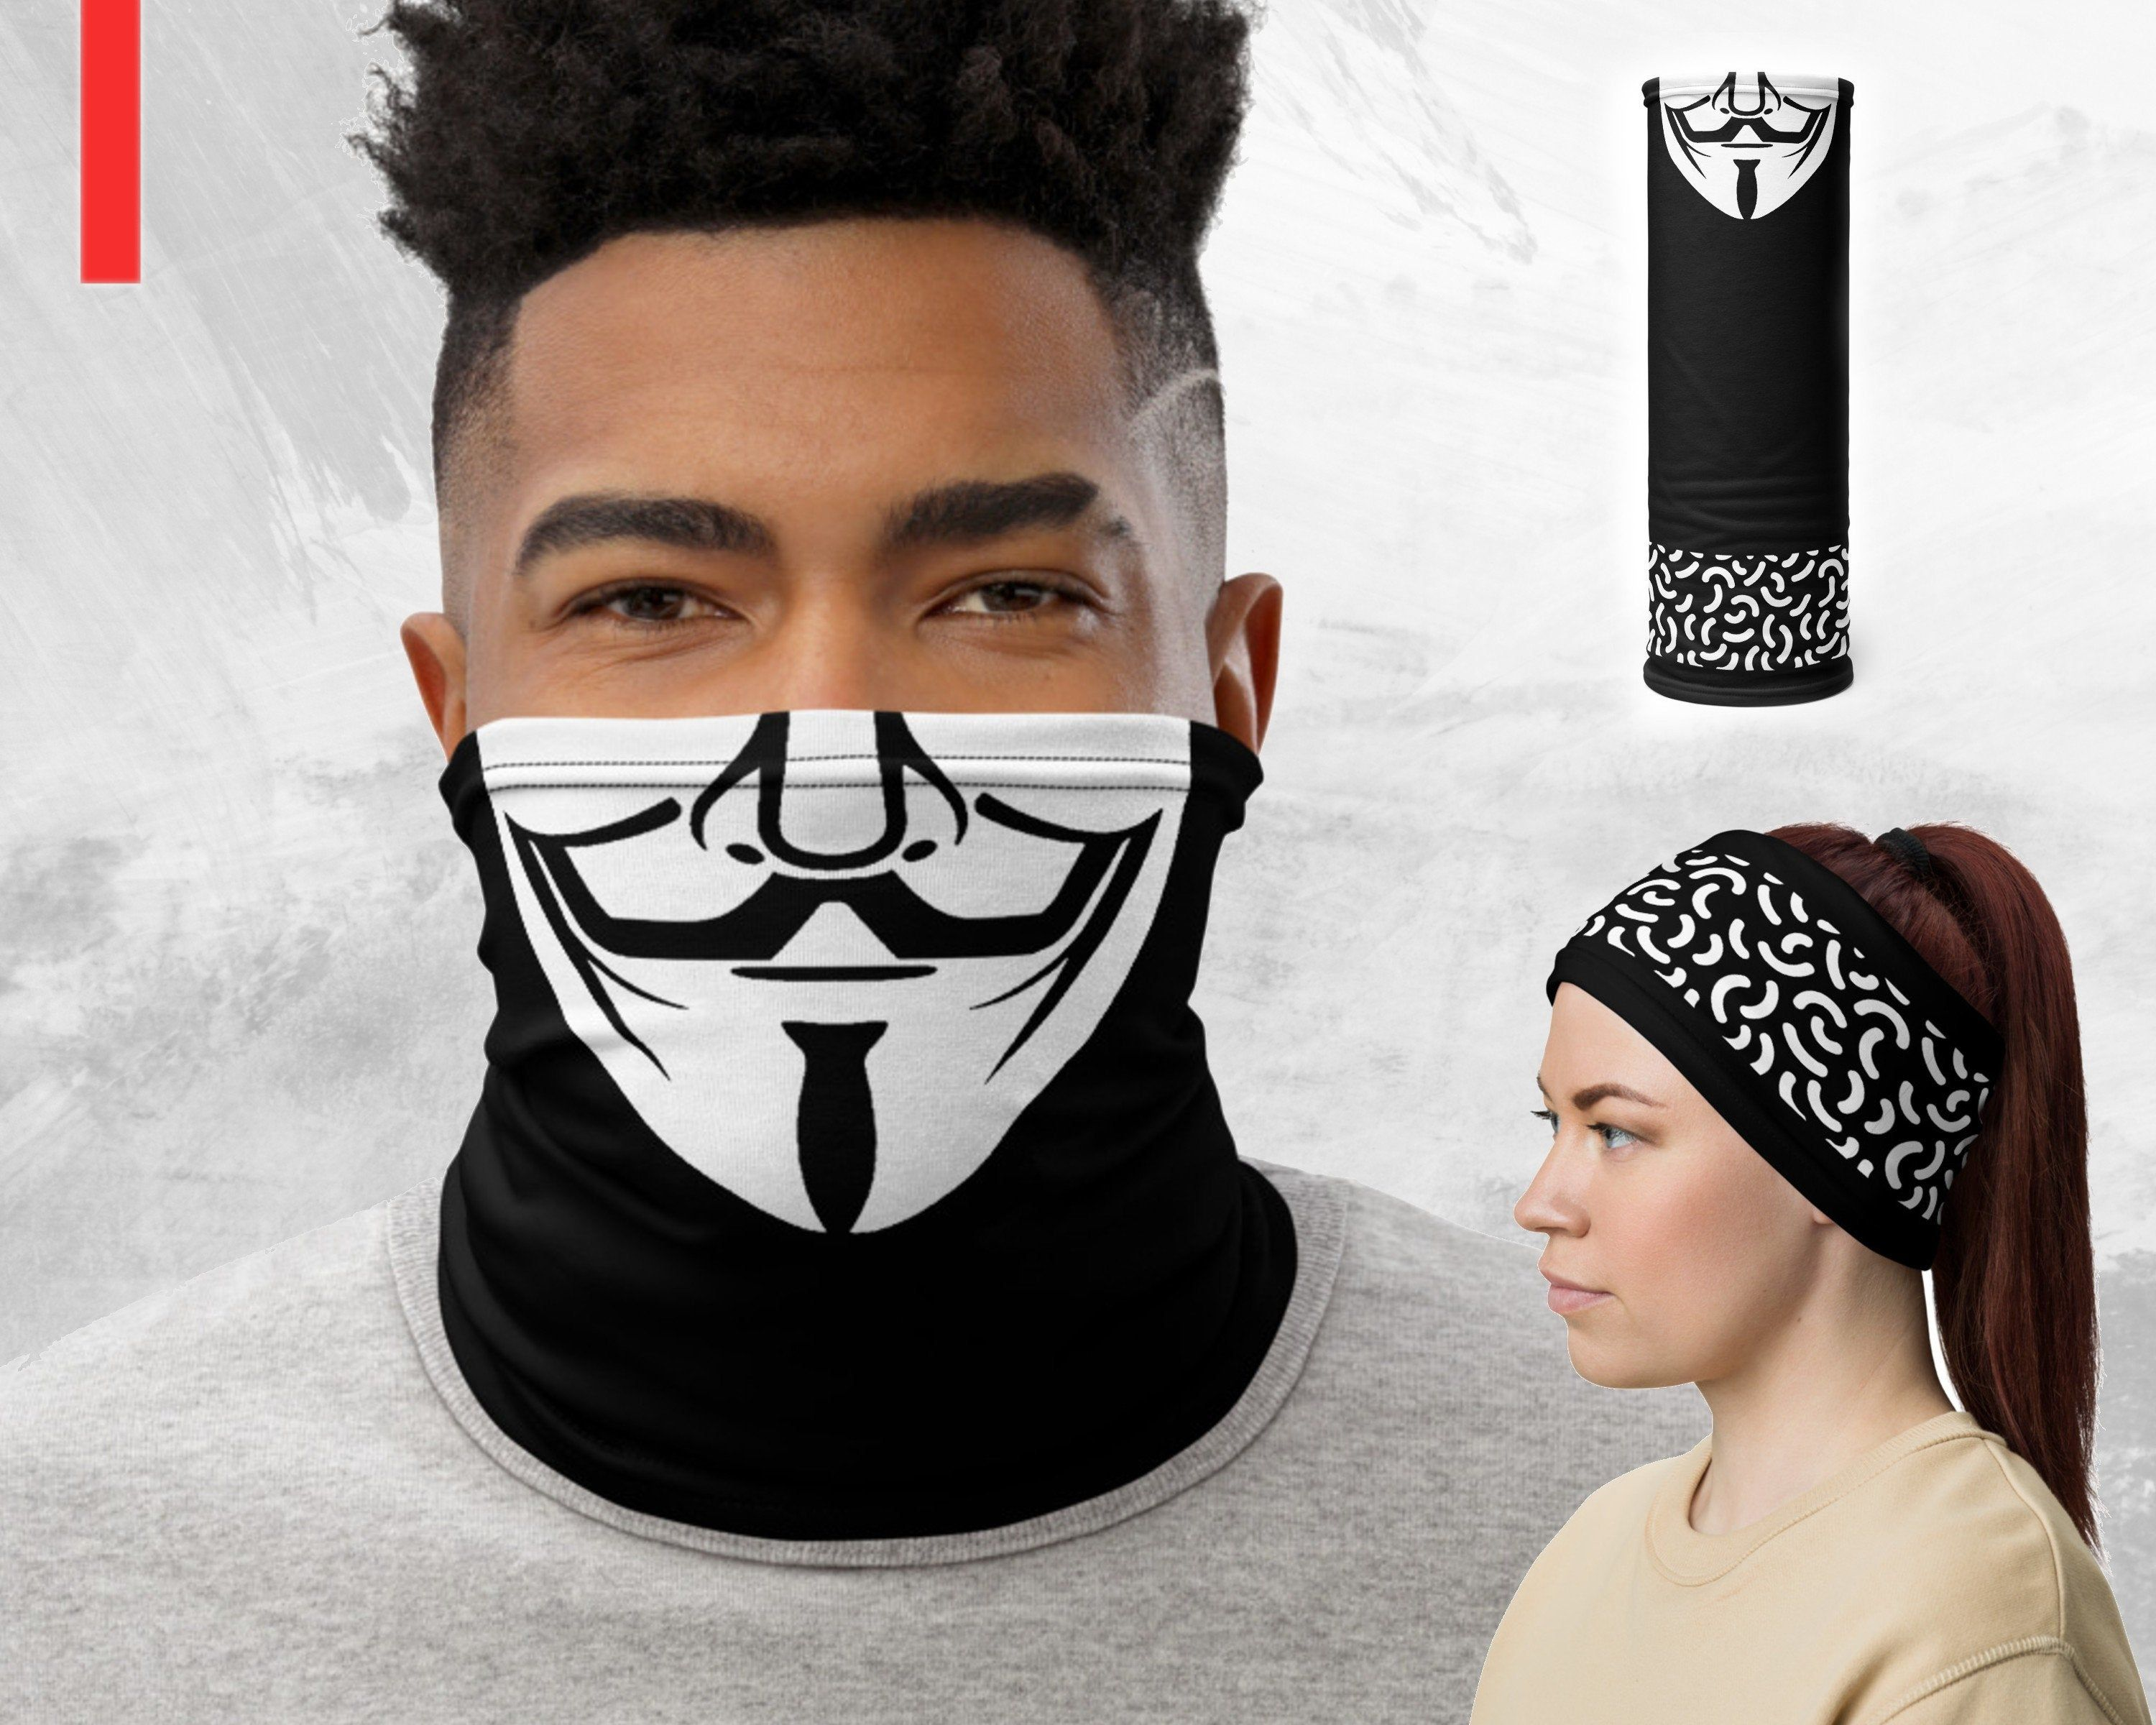 V For Vendetta Face Mask Guy Fawkes Neck Gaiter Washable Etsy V For Vendetta Face Halloween Face Mask Halloween Masks For Sale